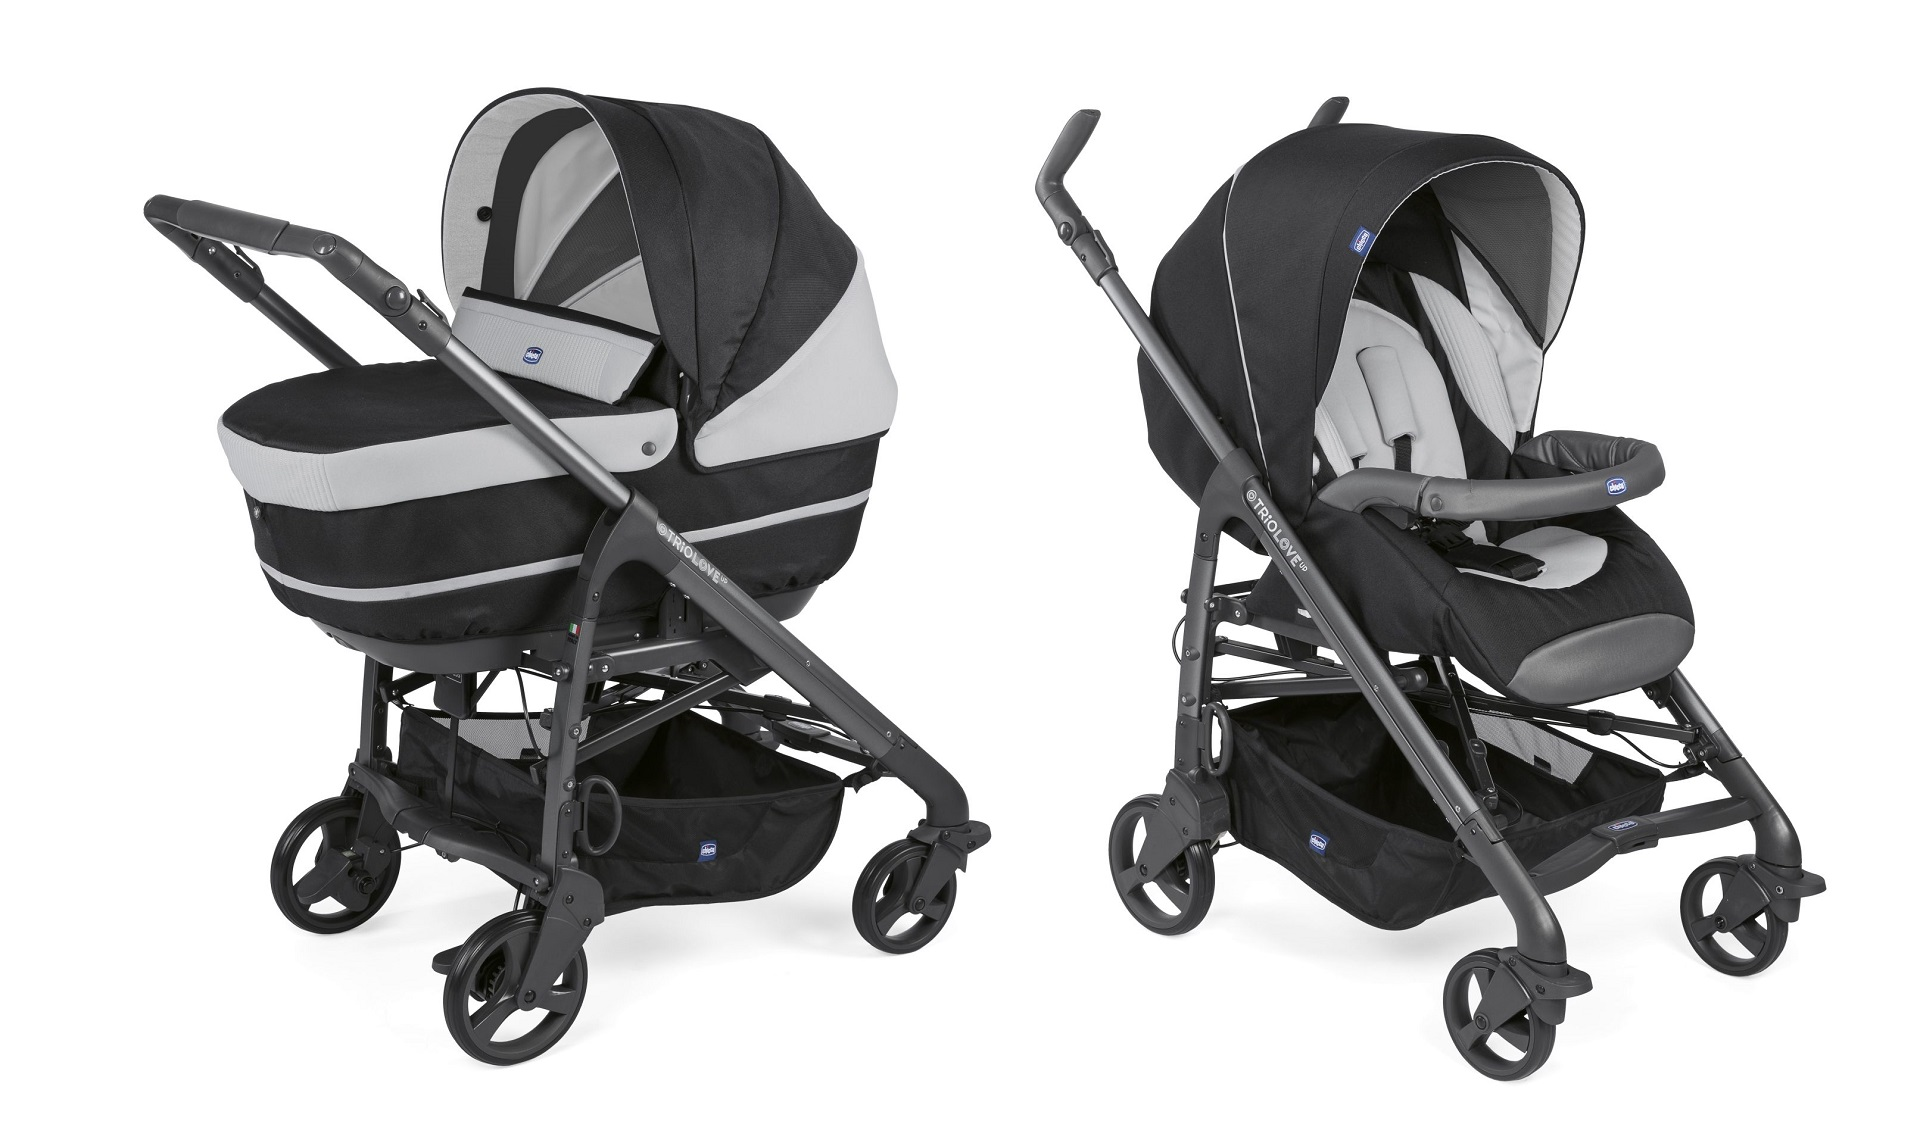 chicco kinderwagen duo love up 2018 jet black buy at kidsroom strollers. Black Bedroom Furniture Sets. Home Design Ideas